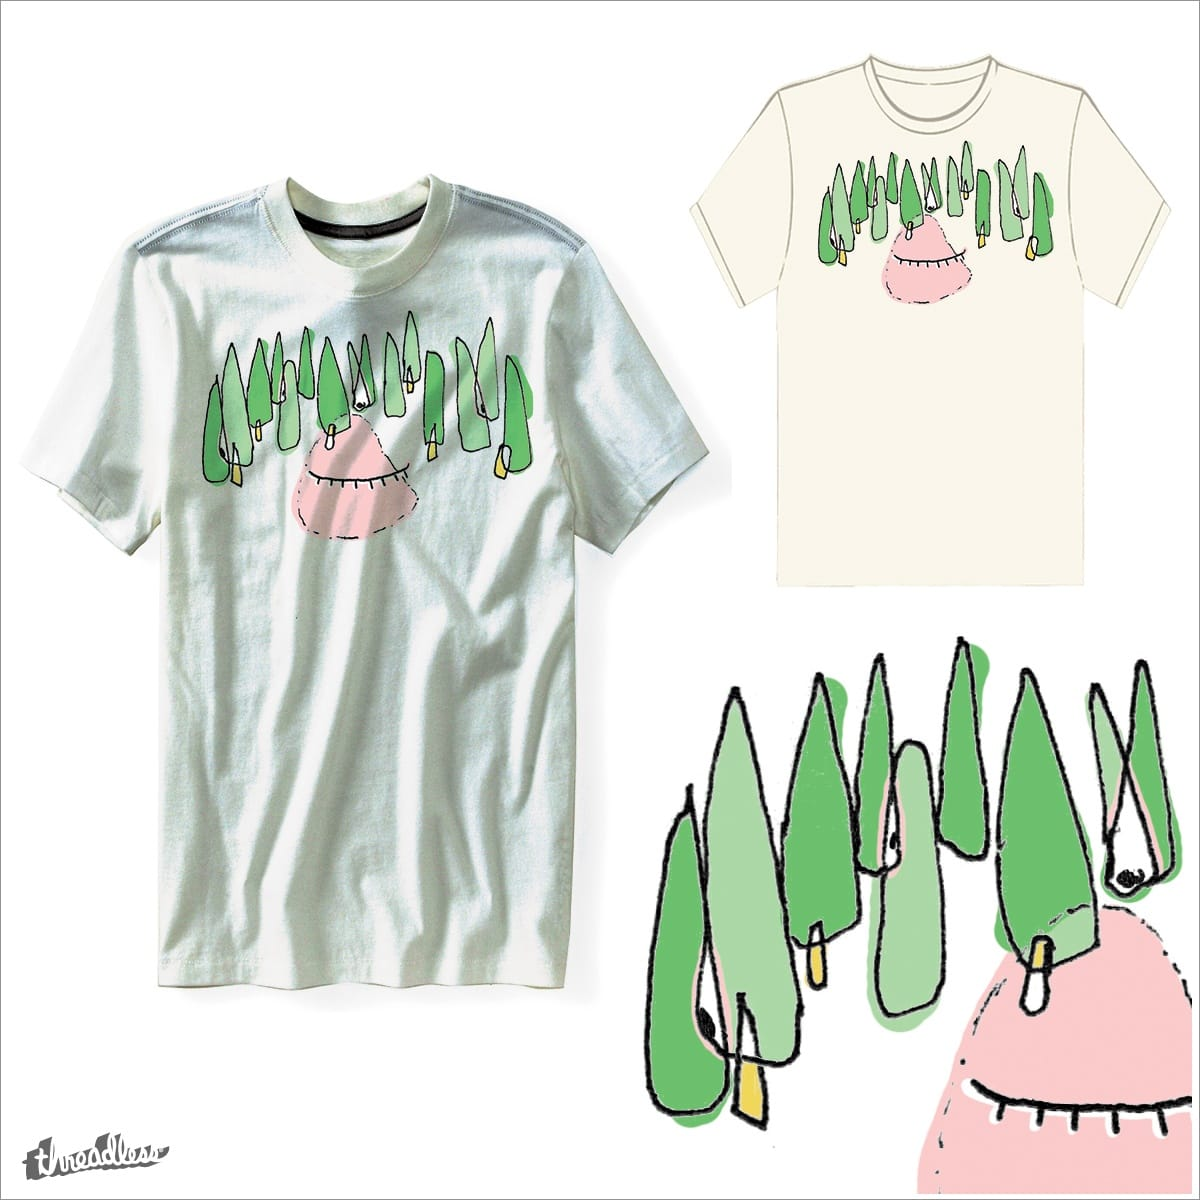 4 rest, 4 trees by phelup on Threadless